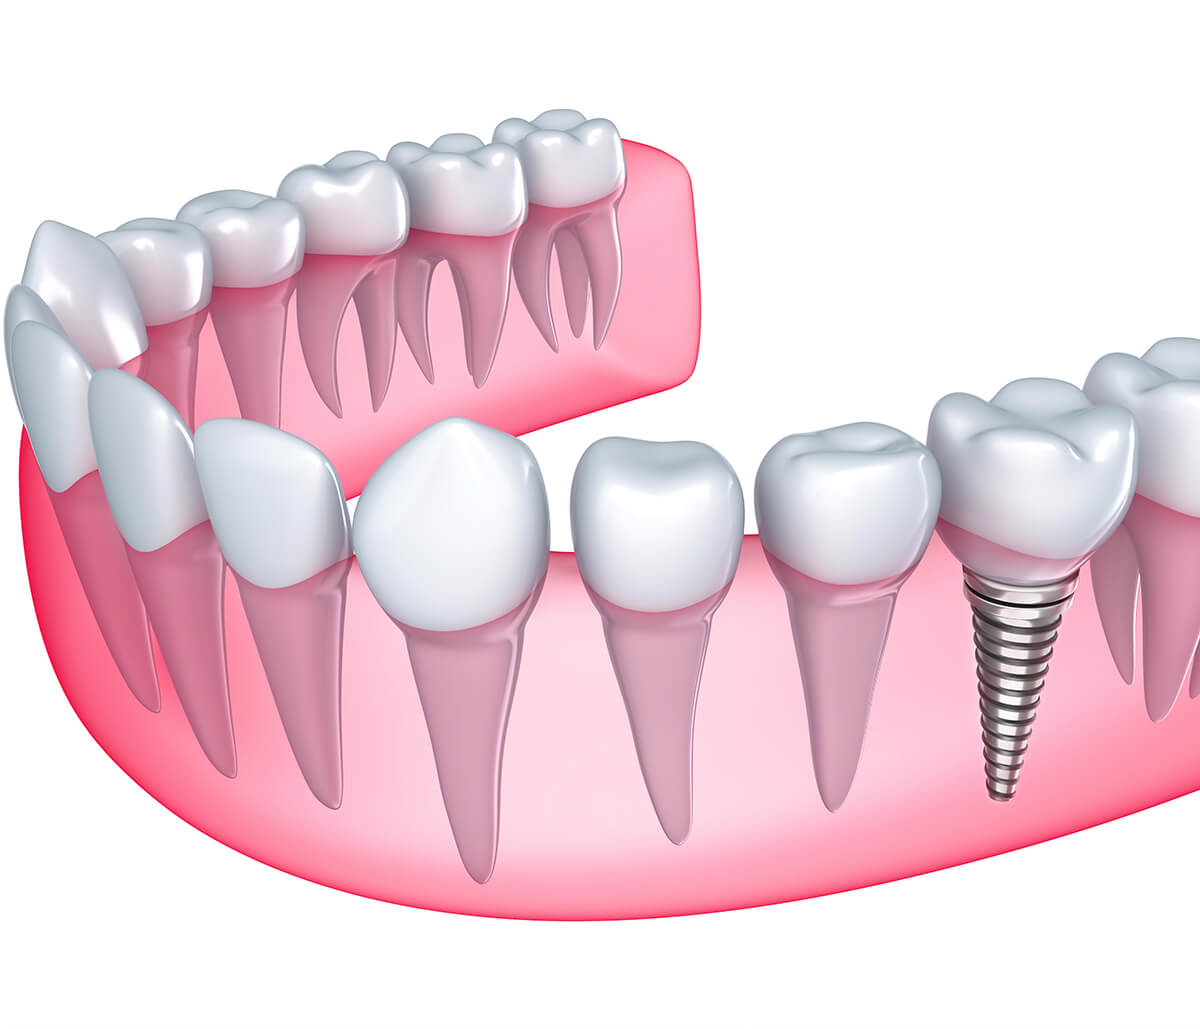 Houston, TX dentist describes the dental implants procedure and process